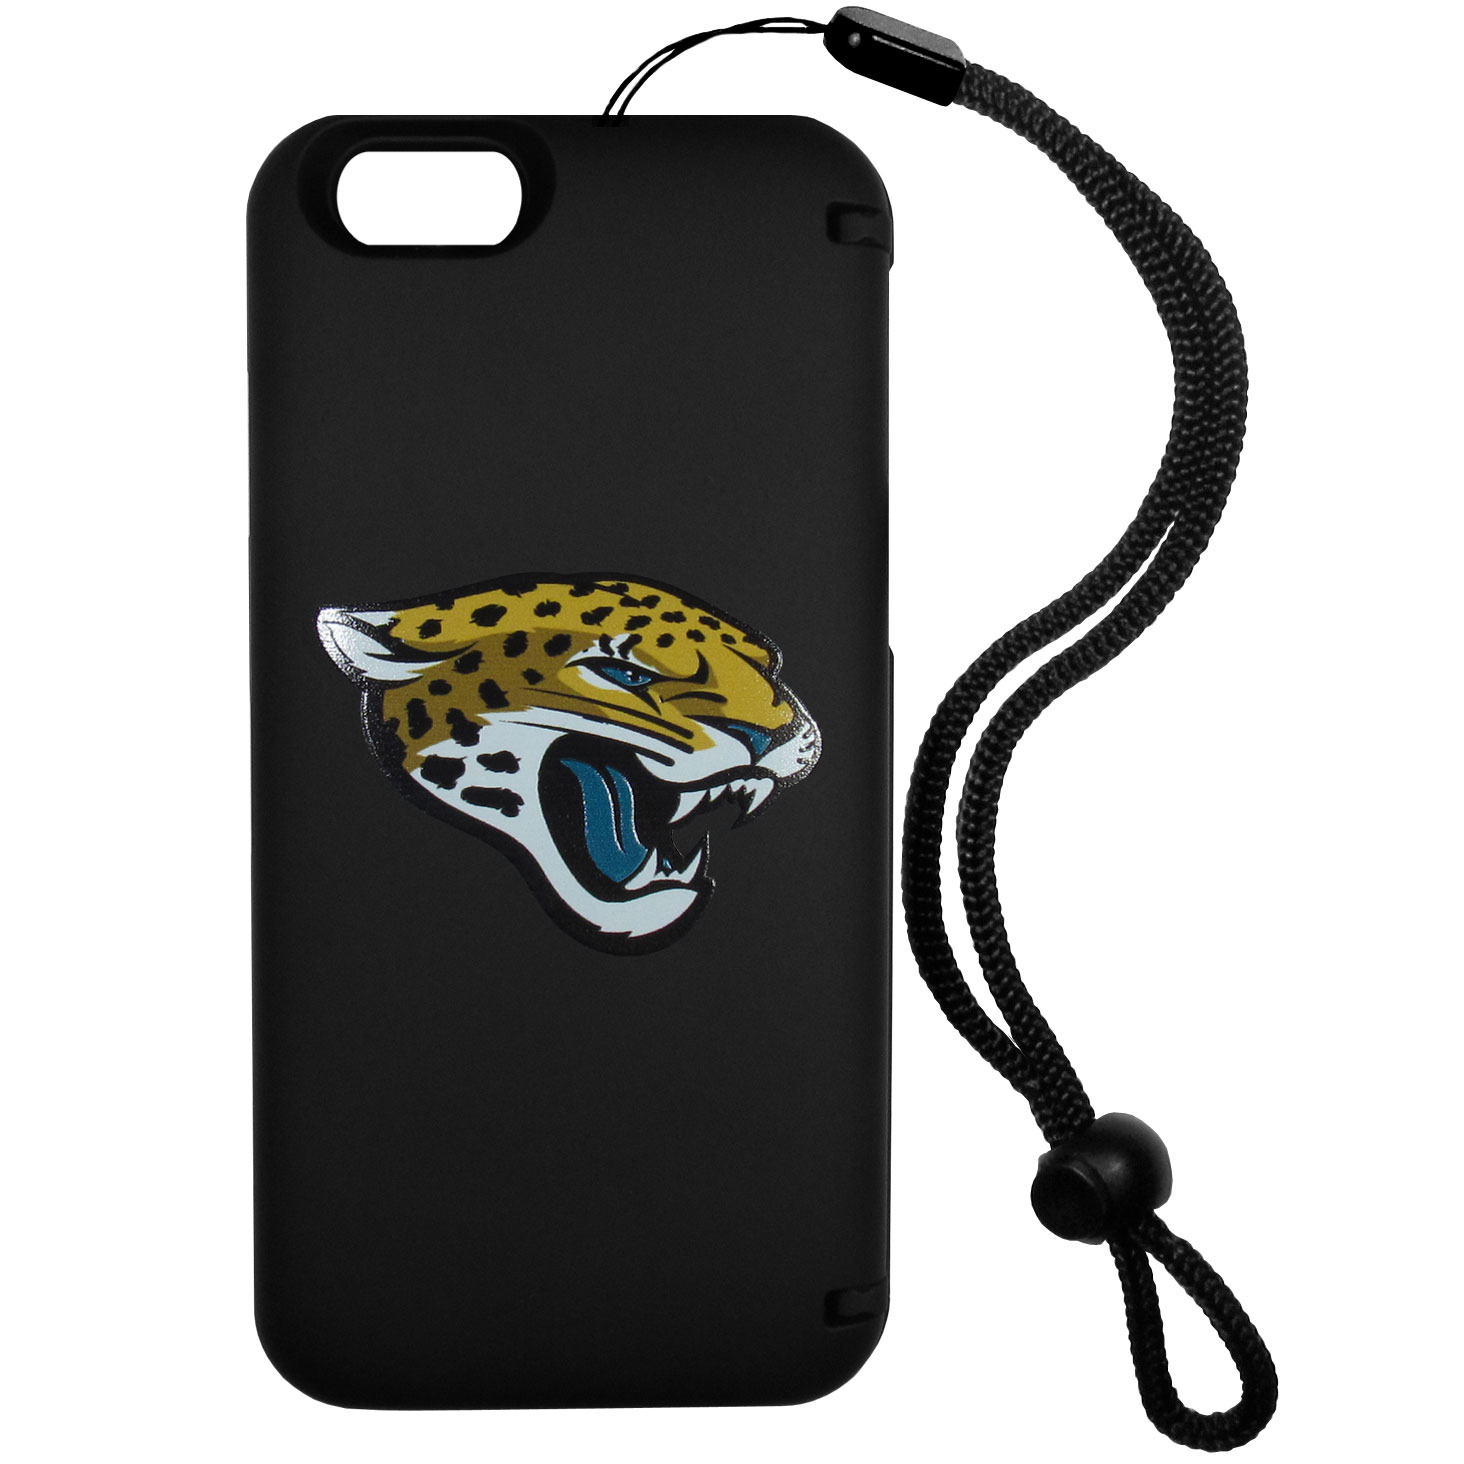 Jacksonville Jaguars iPhone 6 Plus Everything Case - This case really does have everything but the kitchen sink! The hidden compartment lets you keep your cards, money and tickets to the big game safe and secure and has a compact mirror so you can make sure your game face is ready to go. It also comes with a kickstand to make chatting and watching videos a breeze. The wrist strap allows you to travel with ease with your everything case. If that's not enough, it also comes with the Jacksonville Jaguars logo printed in expert detail on the front.